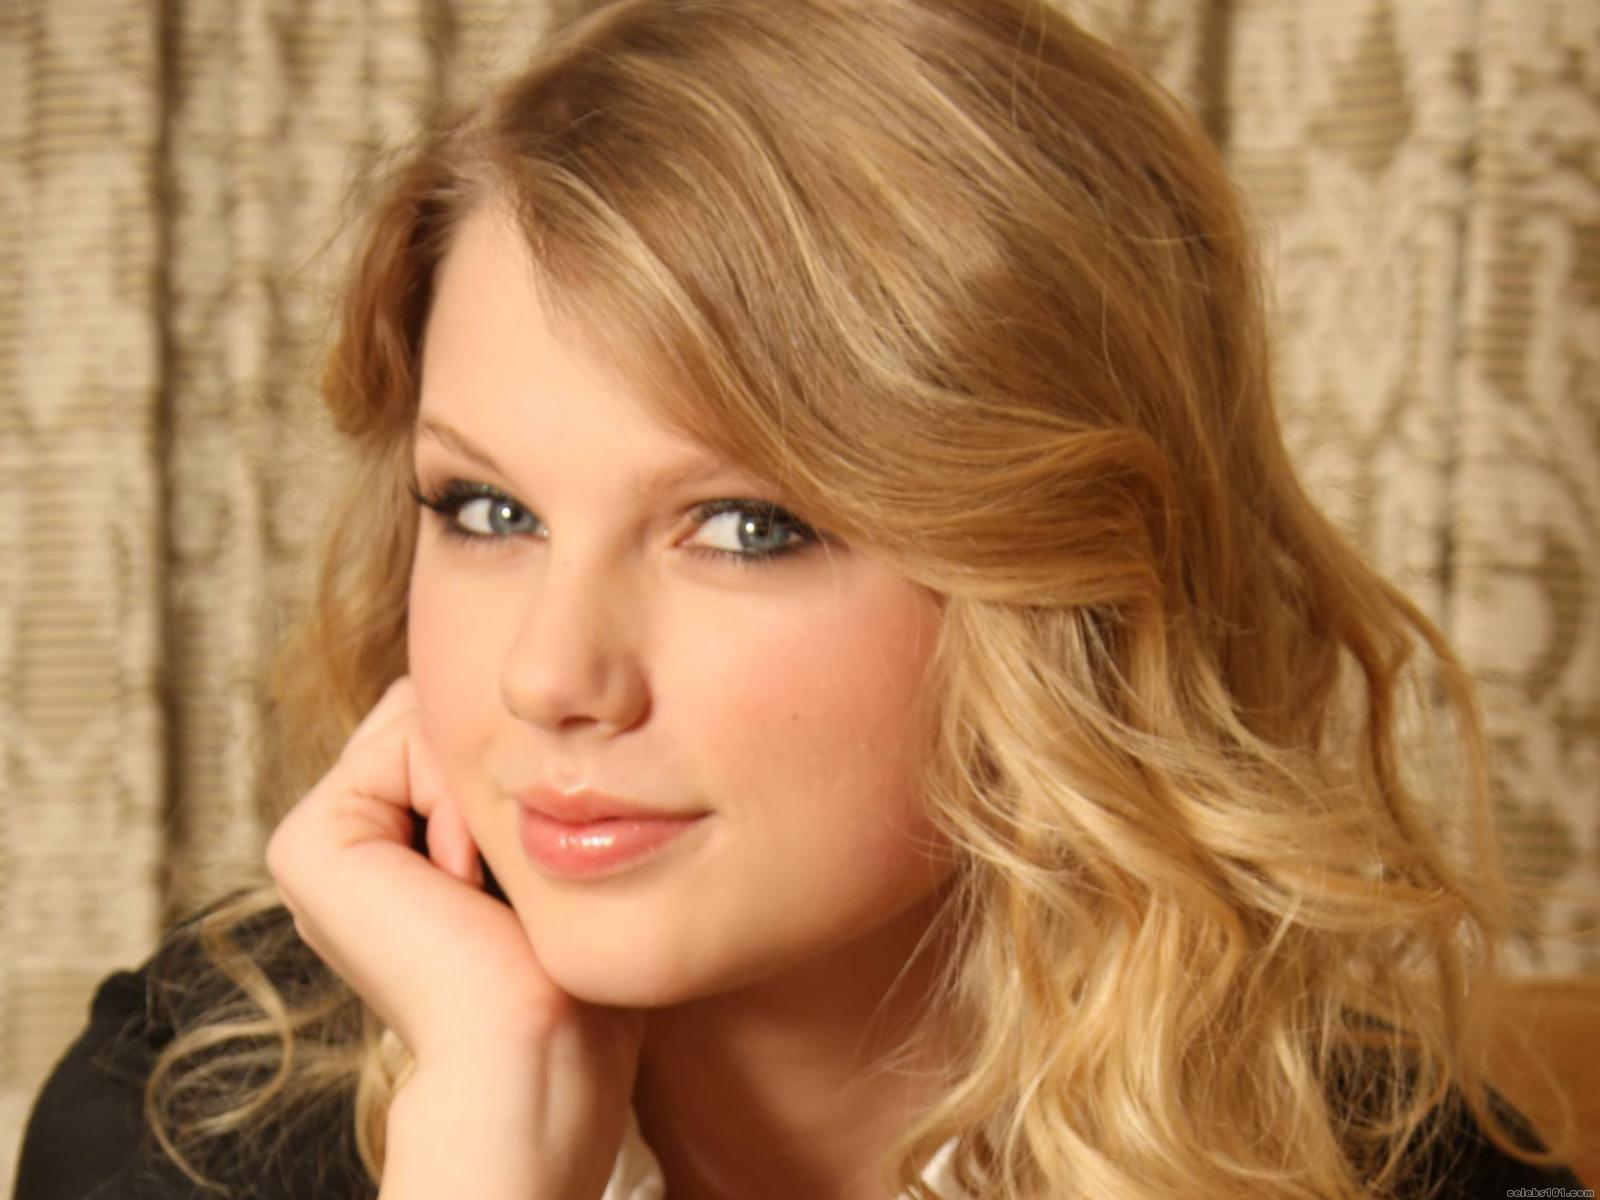 http://2.bp.blogspot.com/-abWSKmkAet0/TwifnLS6GuI/AAAAAAAABNM/VKh3SmeESc8/s1600/Taylor-Swift-photo-shoot.jpg